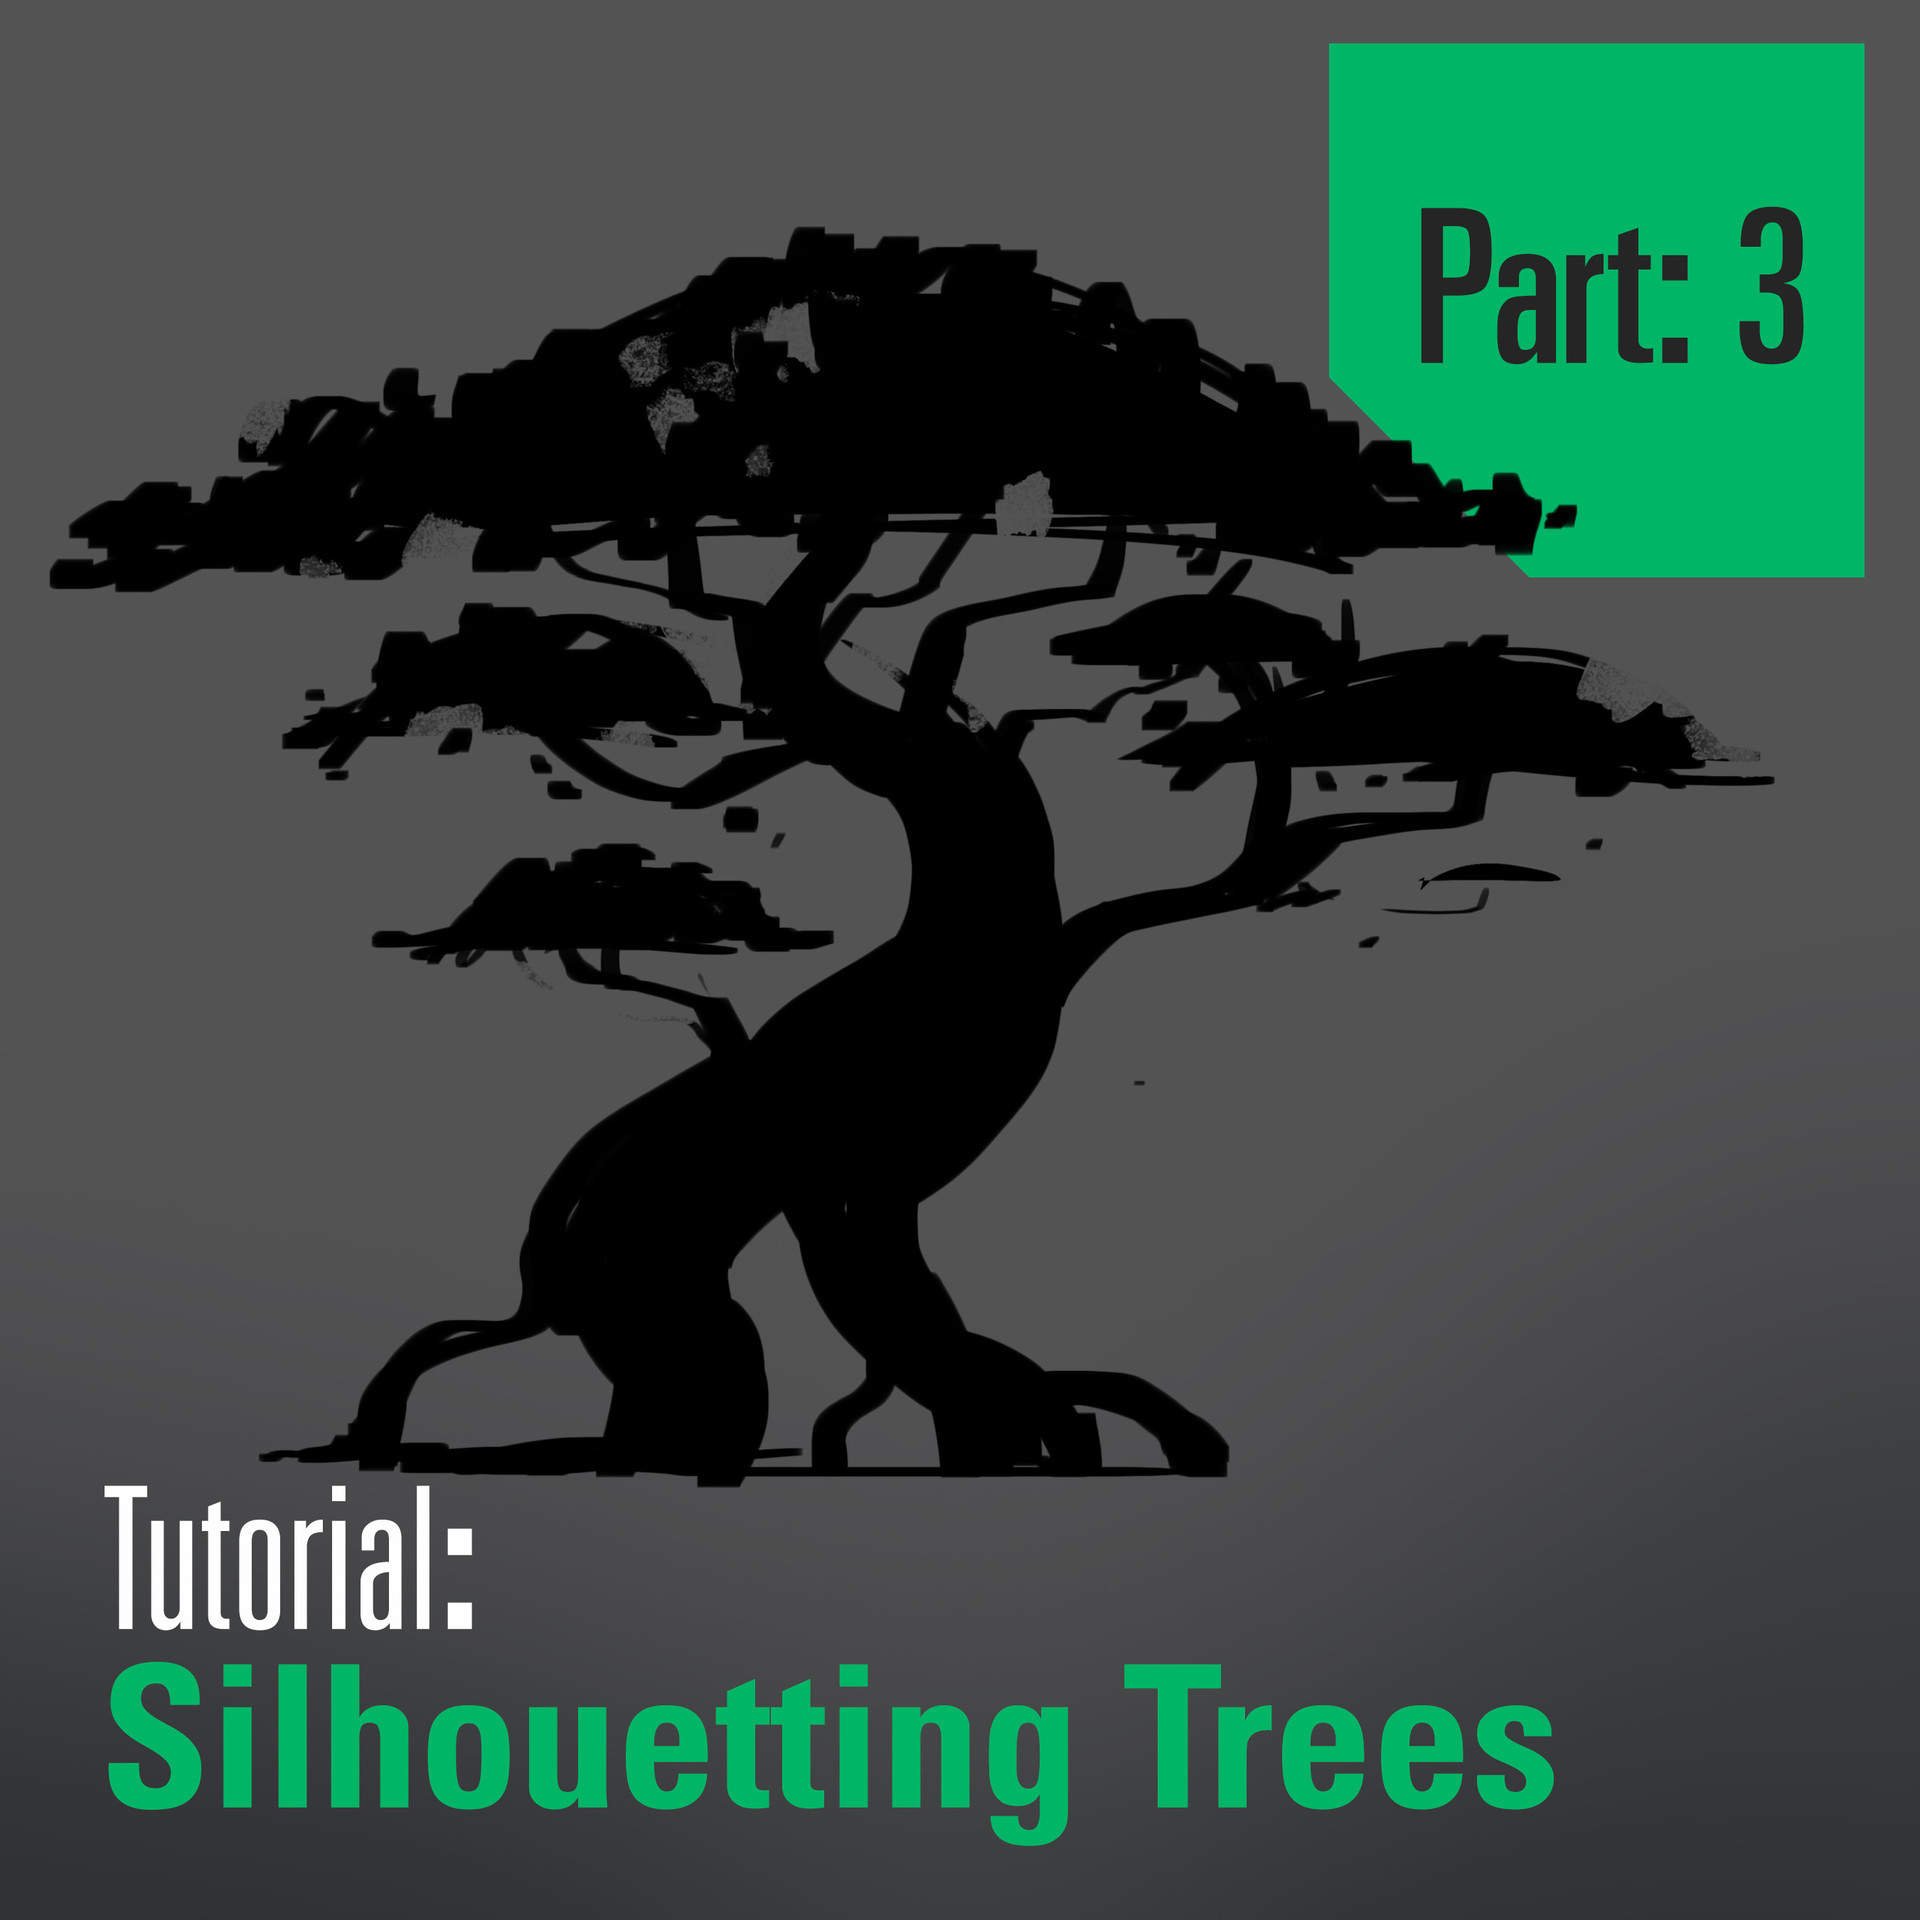 Tutorial - Drawing and Designing Trees - Part 3